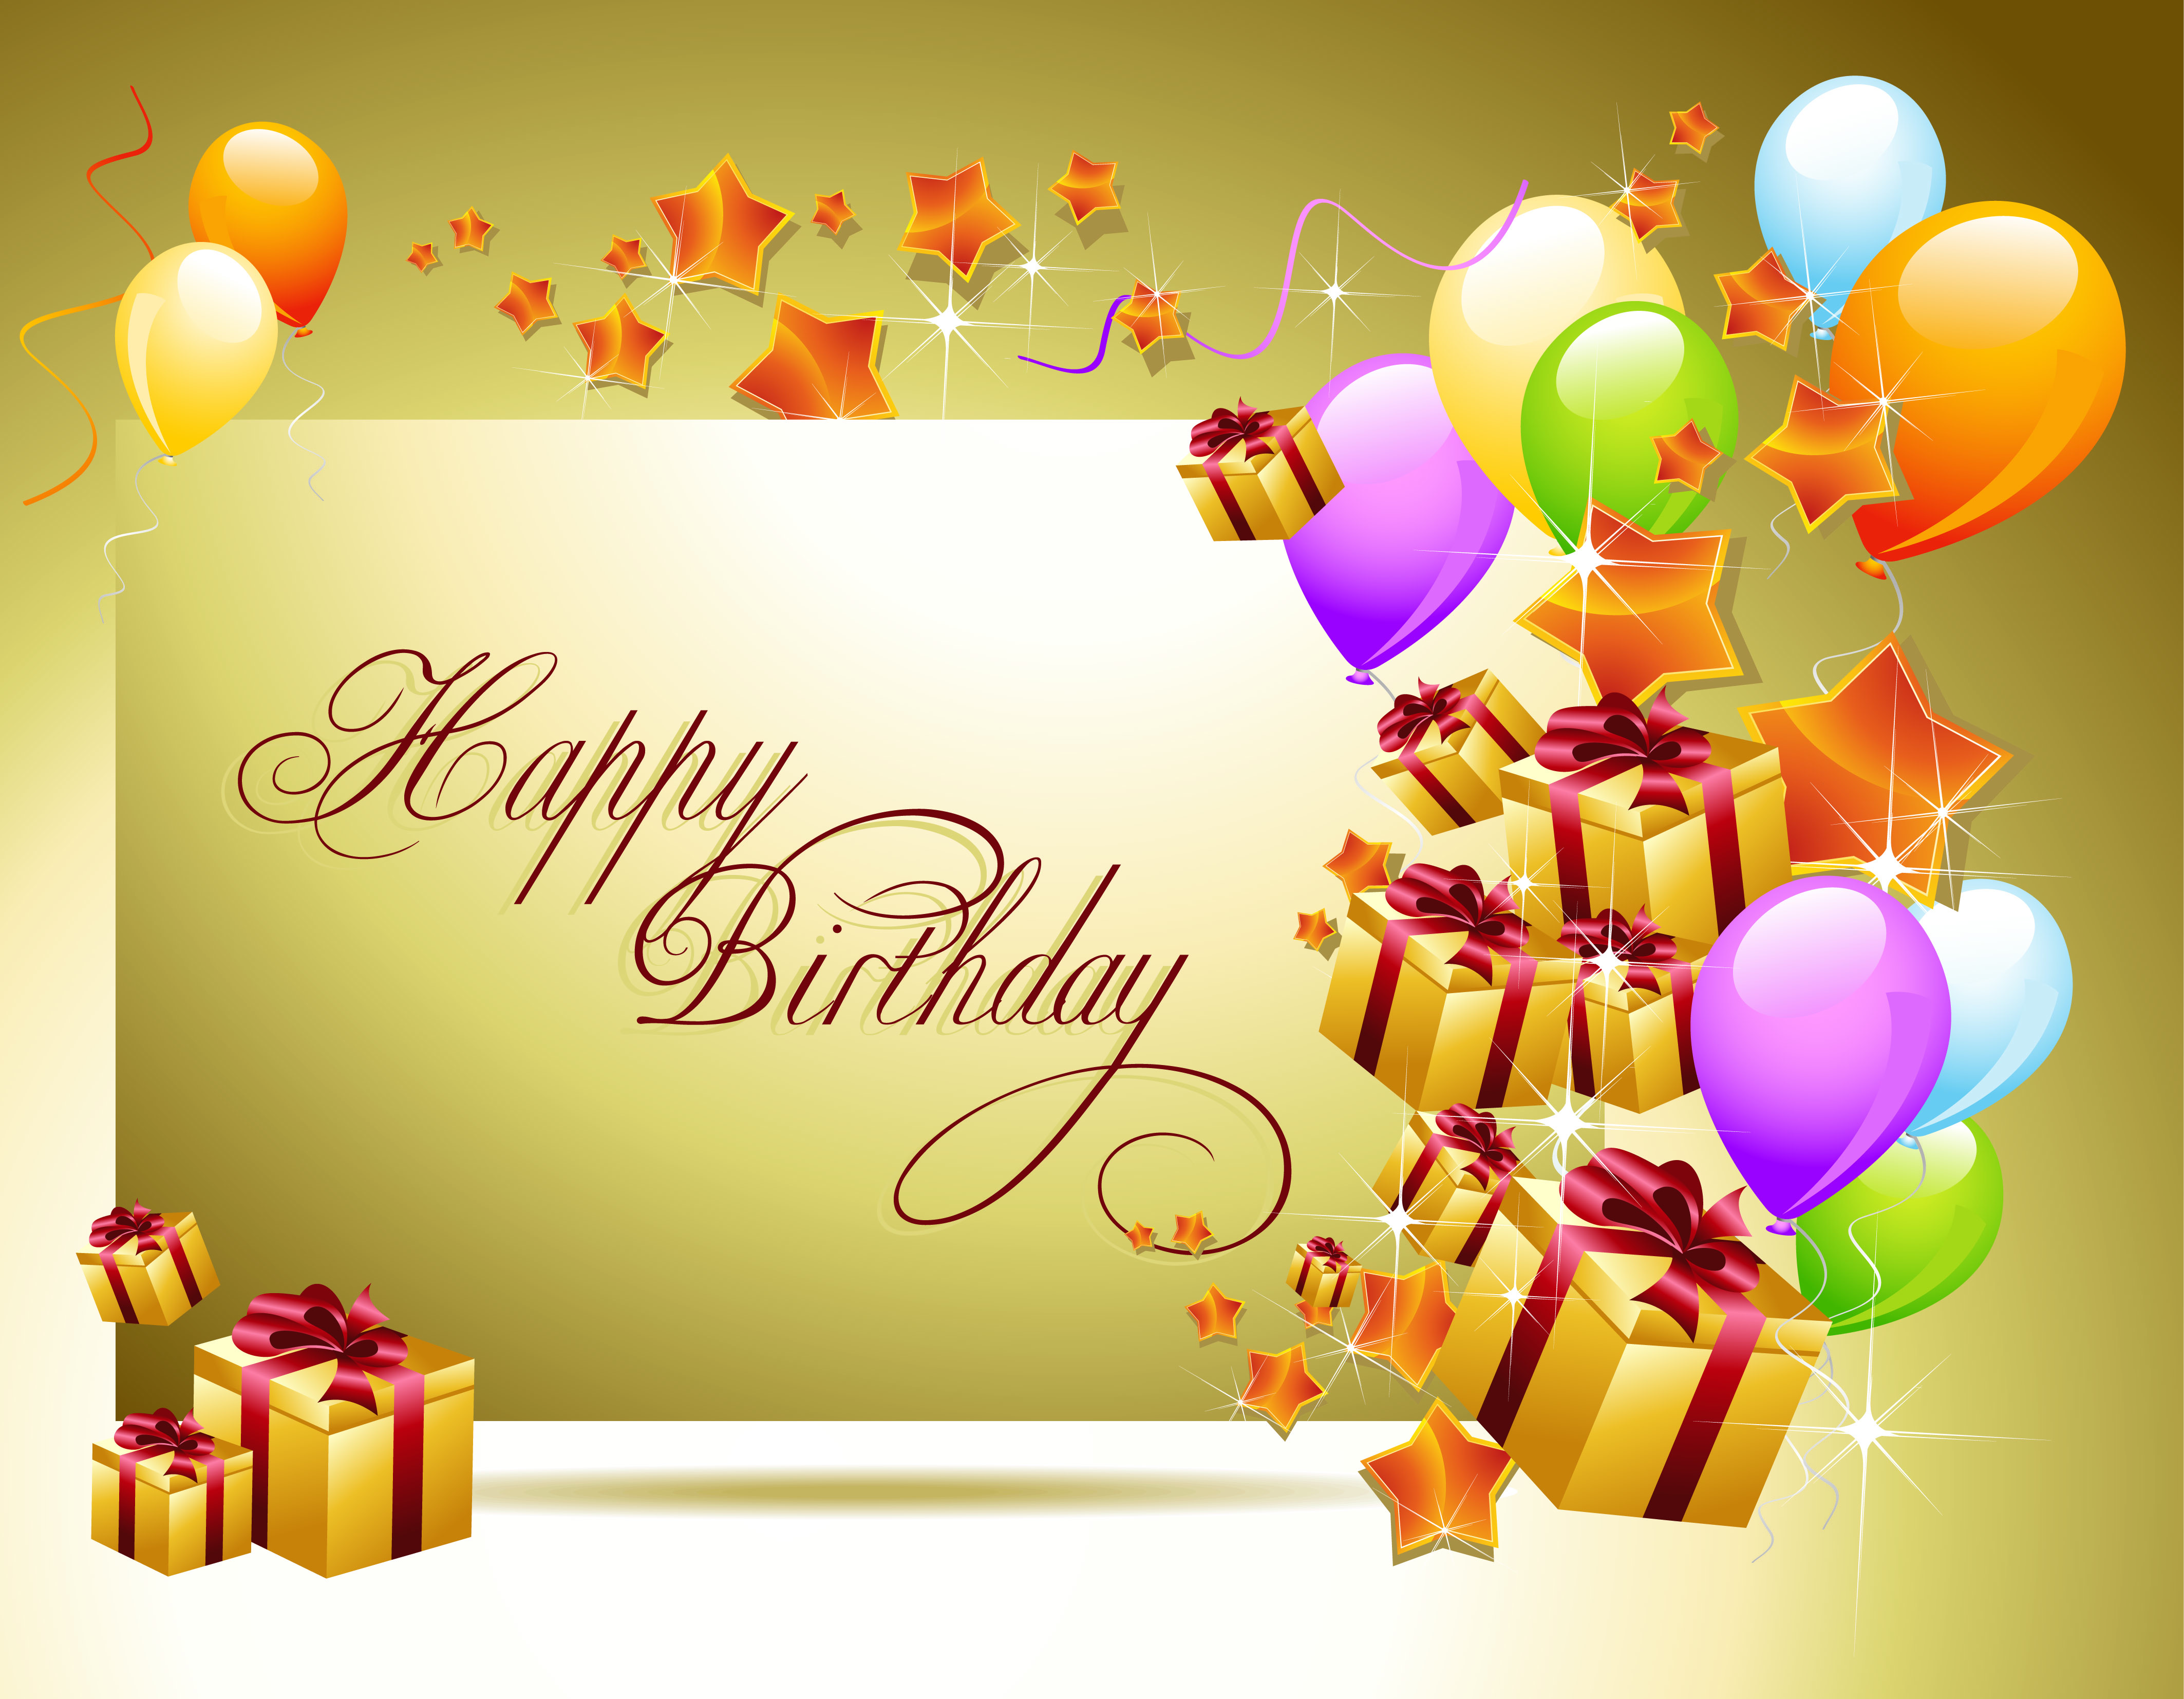 Free Download Alfa Img Showing Gt Golden Birthday Background Hd 4252x3307 For Your Desktop Mobile Tablet Explore 69 Birthday Background Pictures Birthday Background Pictures Happy Birthday Background Pictures Happy